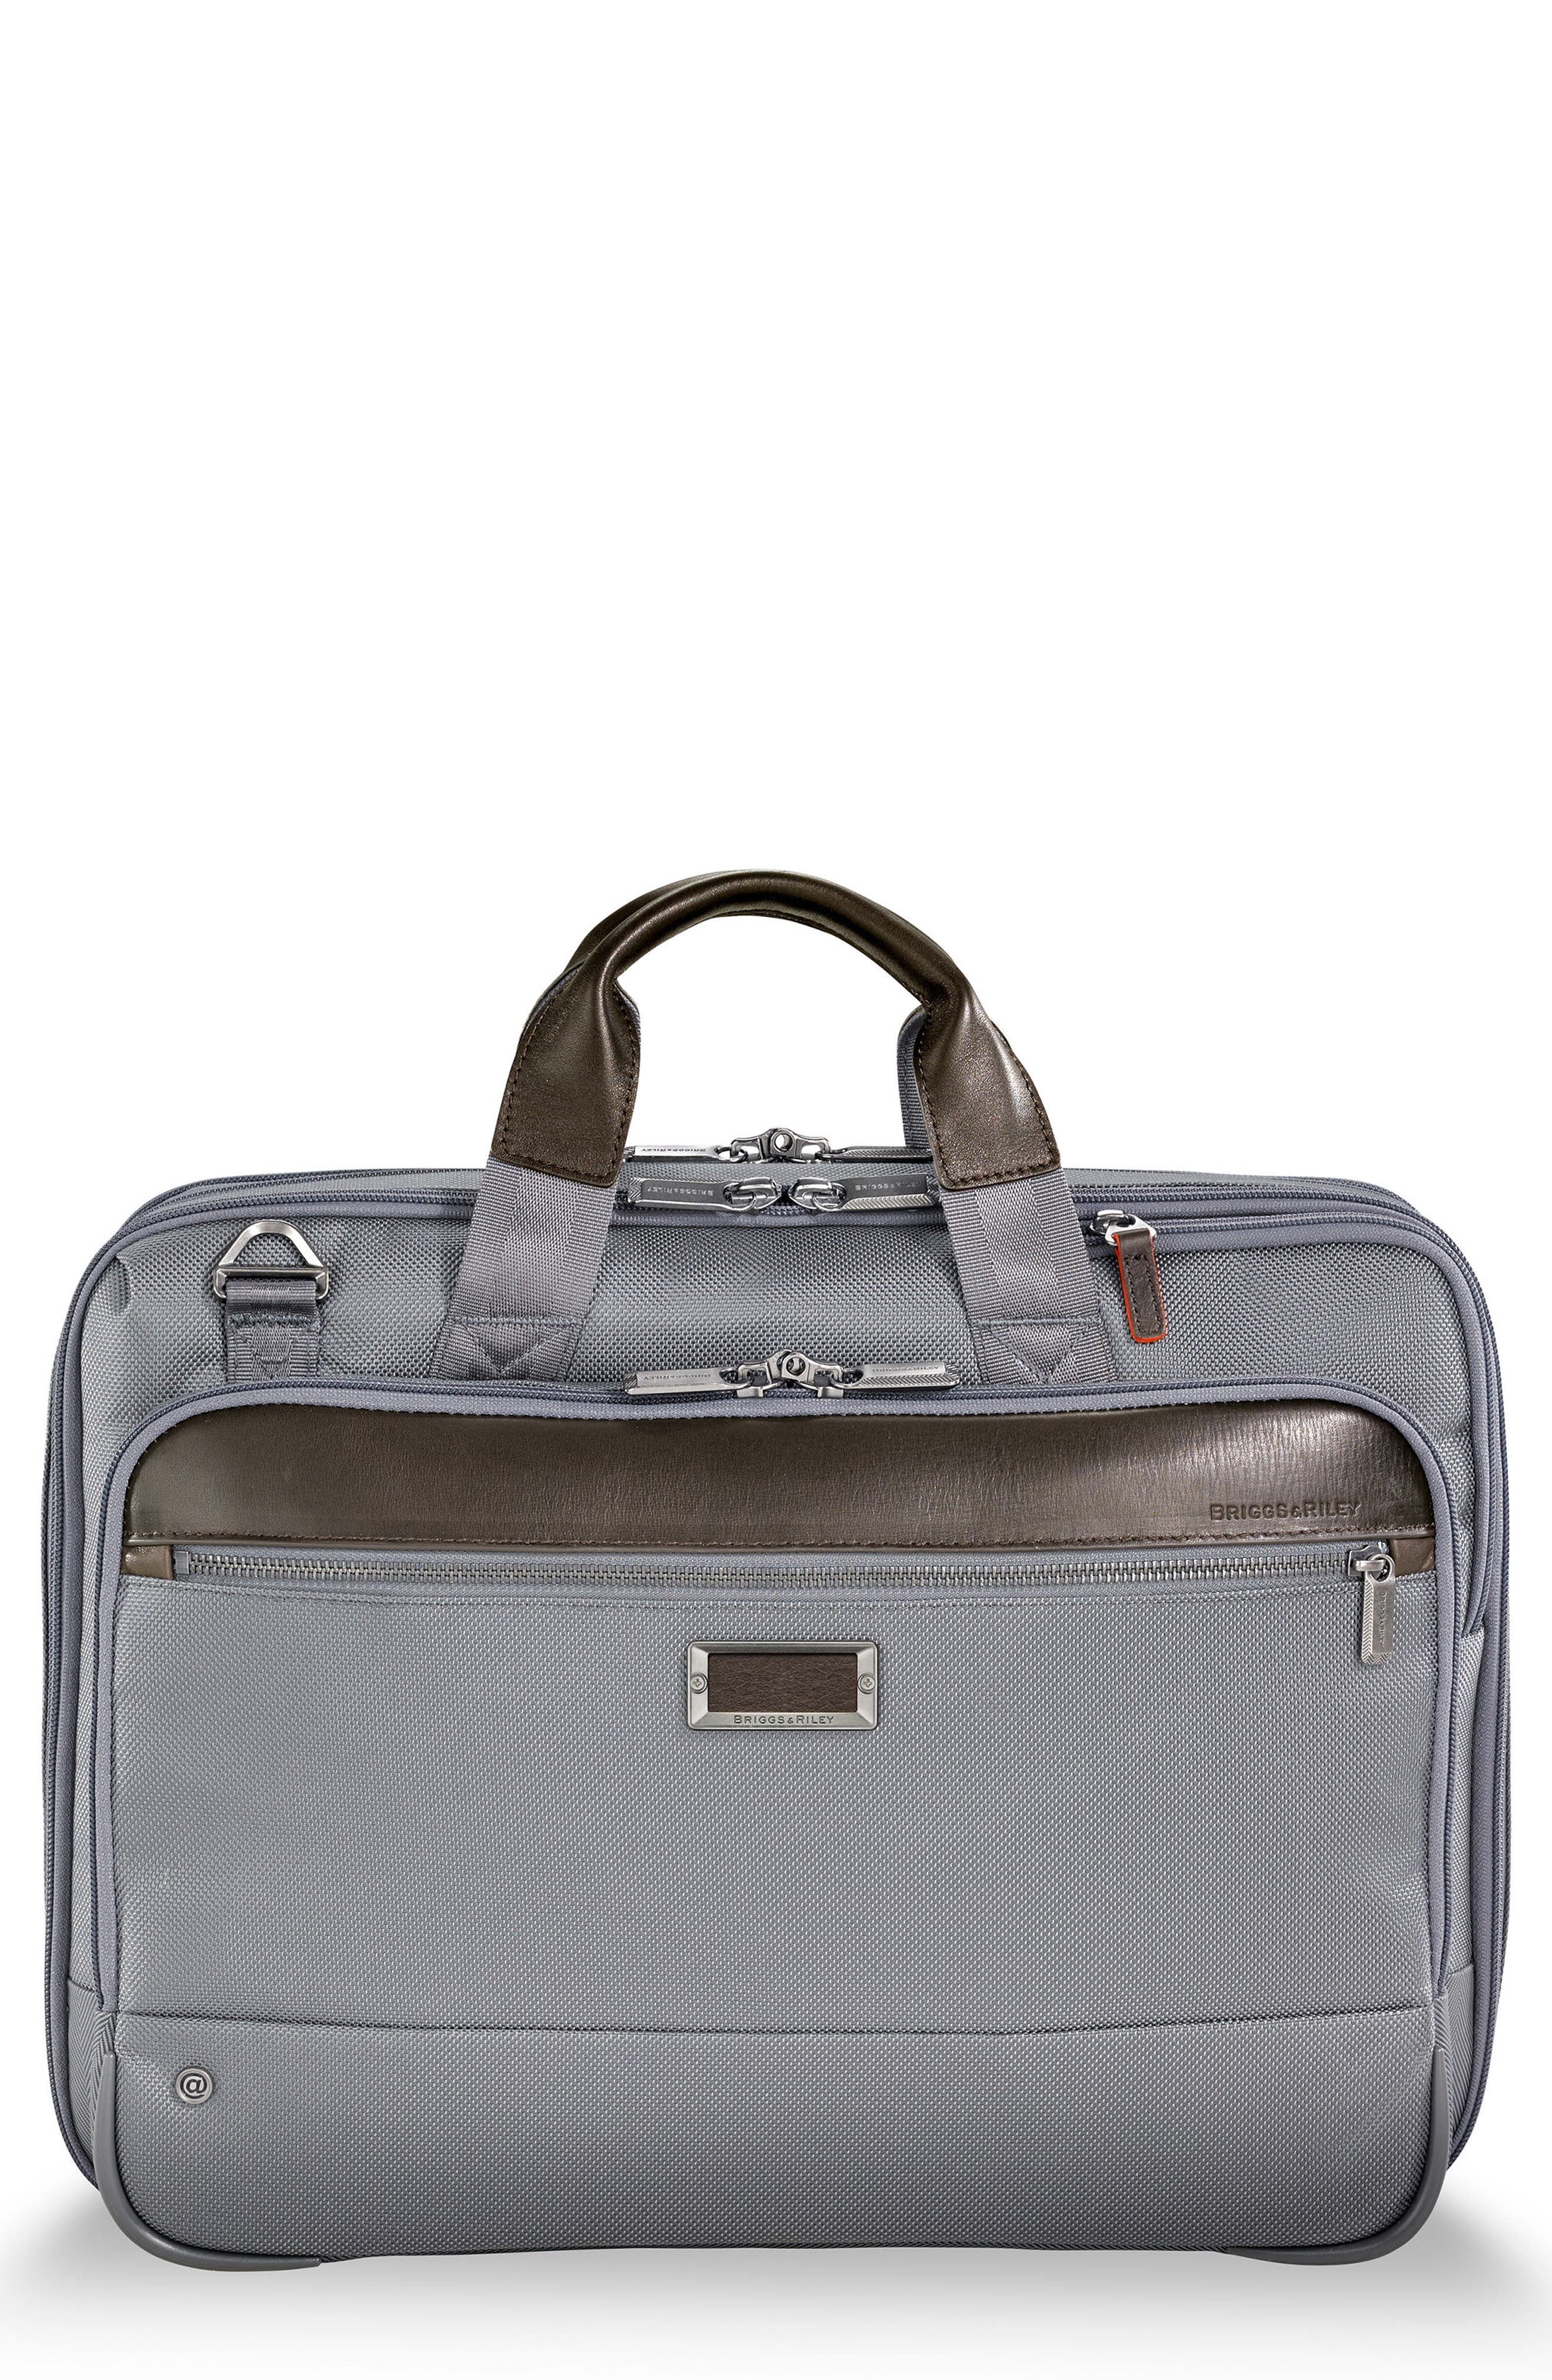 @work Expandable Briefcase,                         Main,                         color, Grey